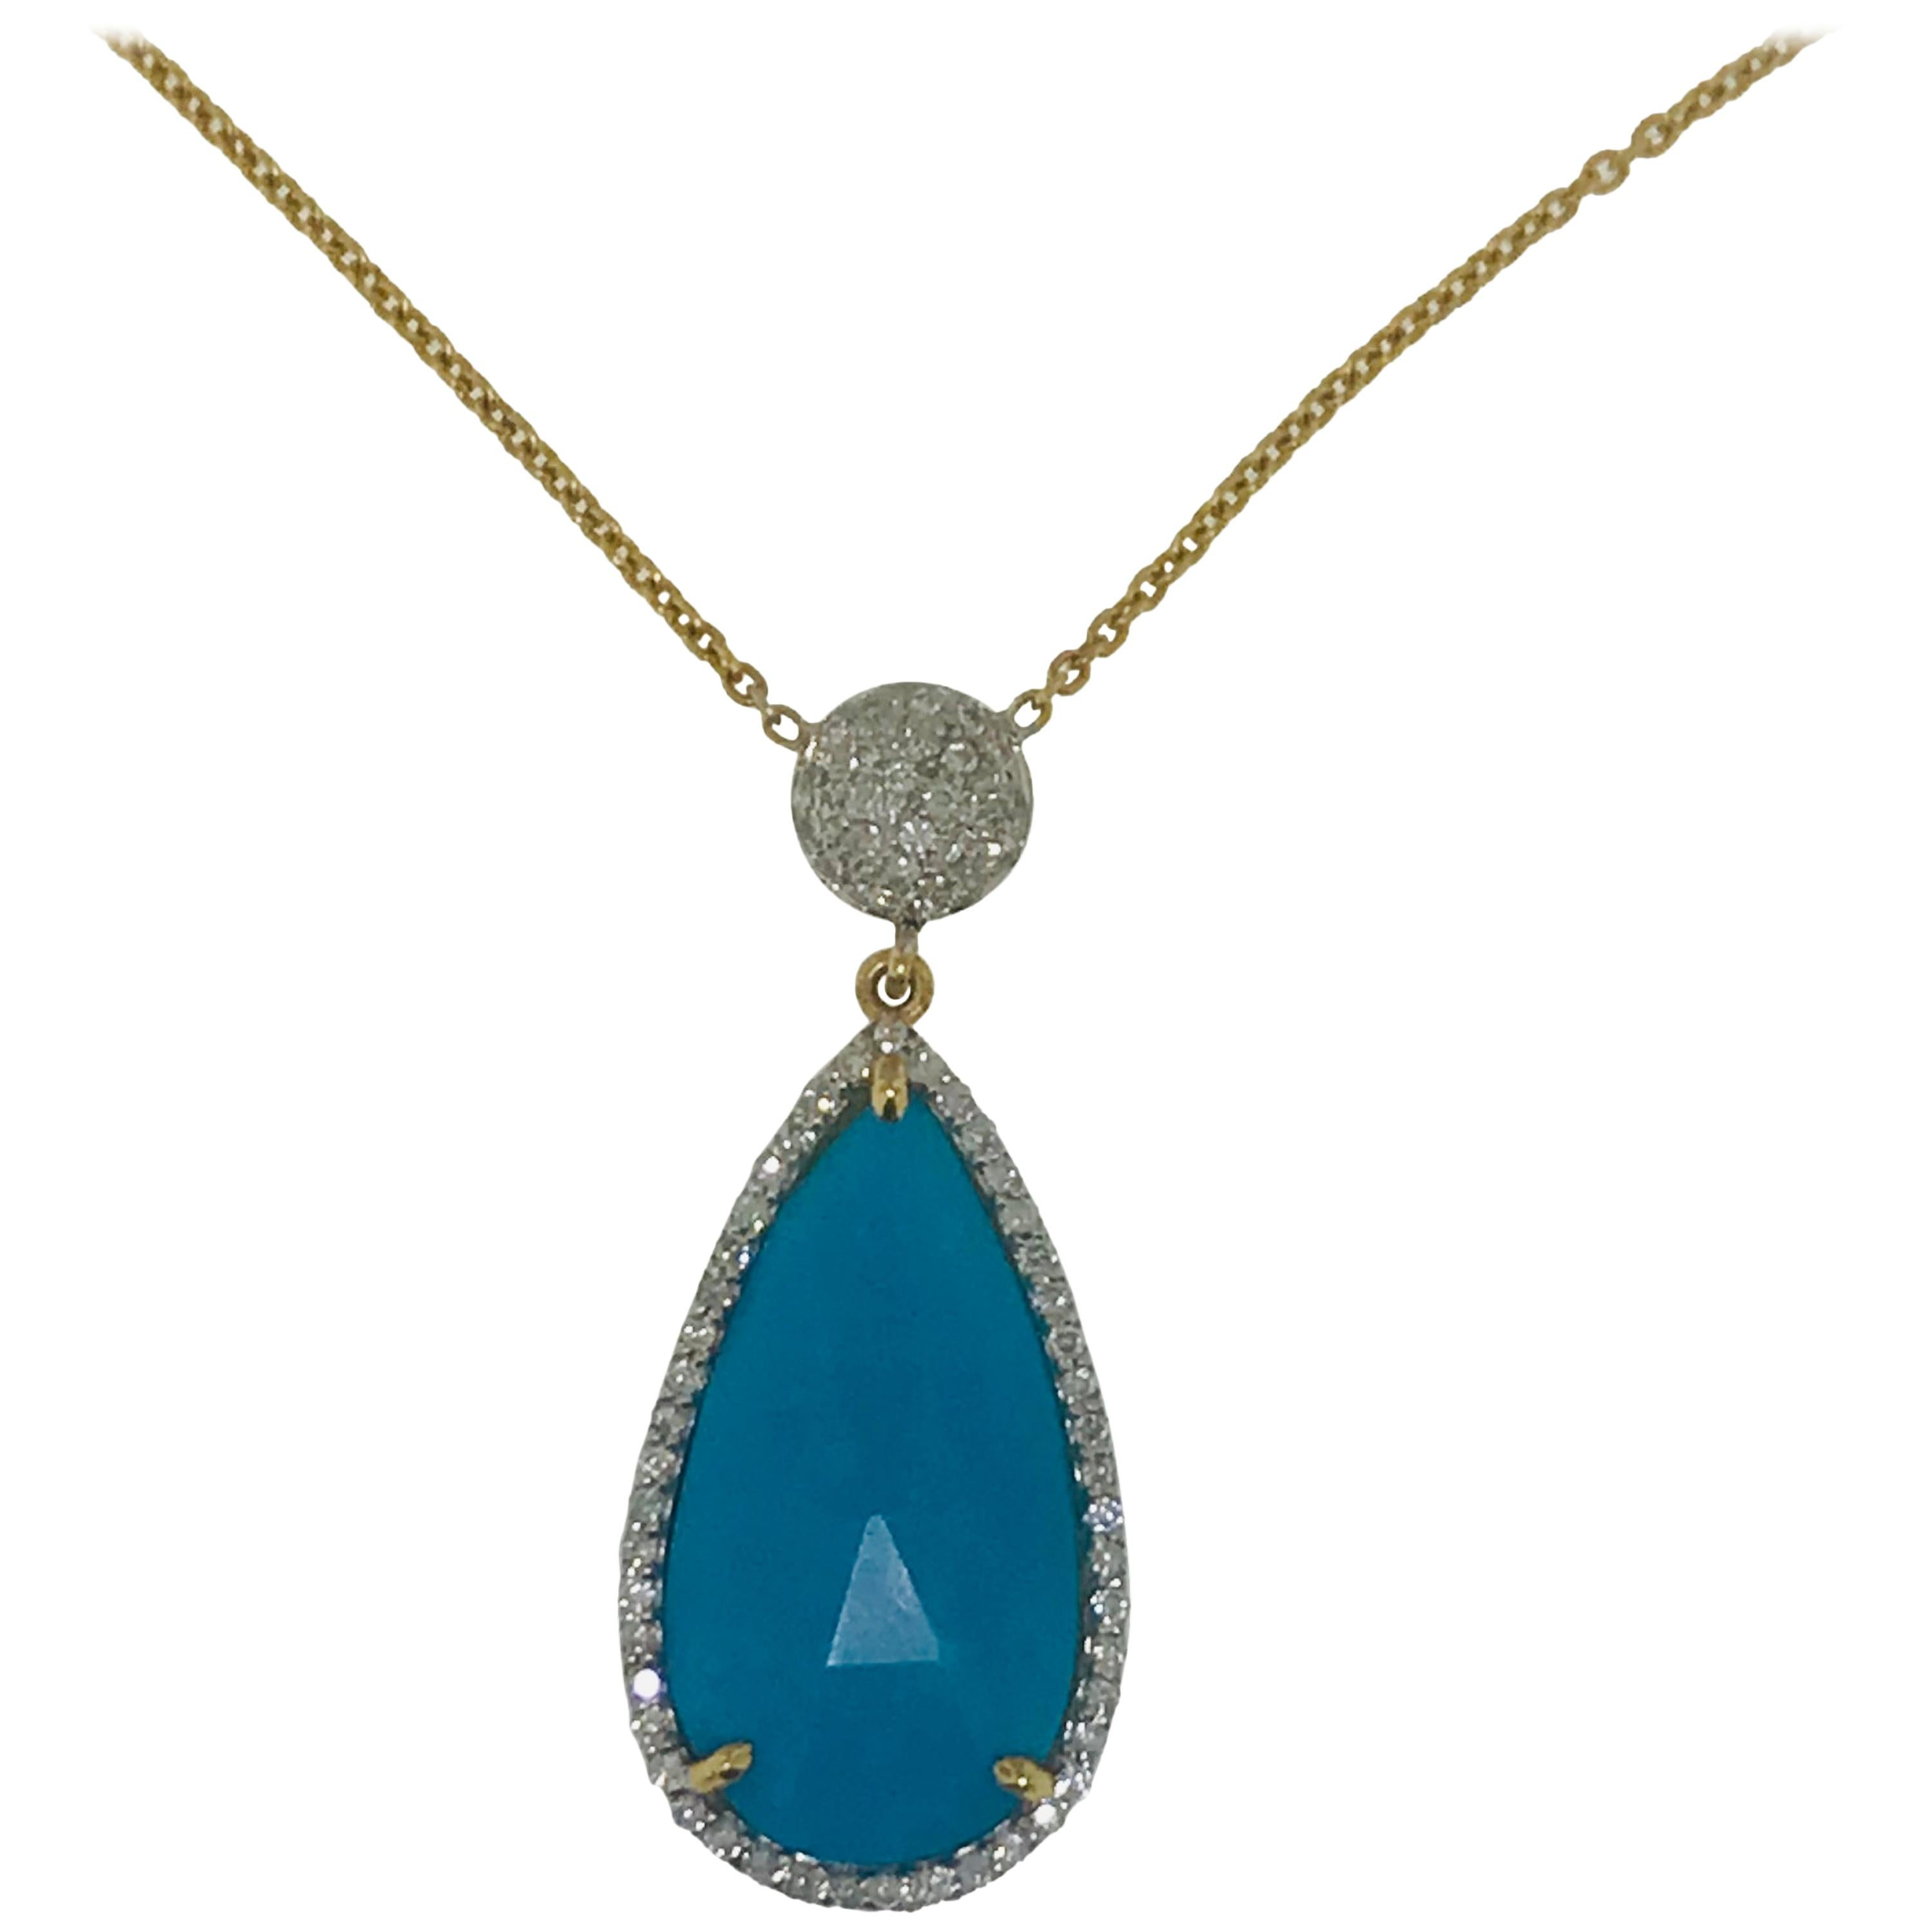 7 Carat Turquoise Necklace with .50 Carat Diamond Necklace in 18 Karat, 7.50 ct